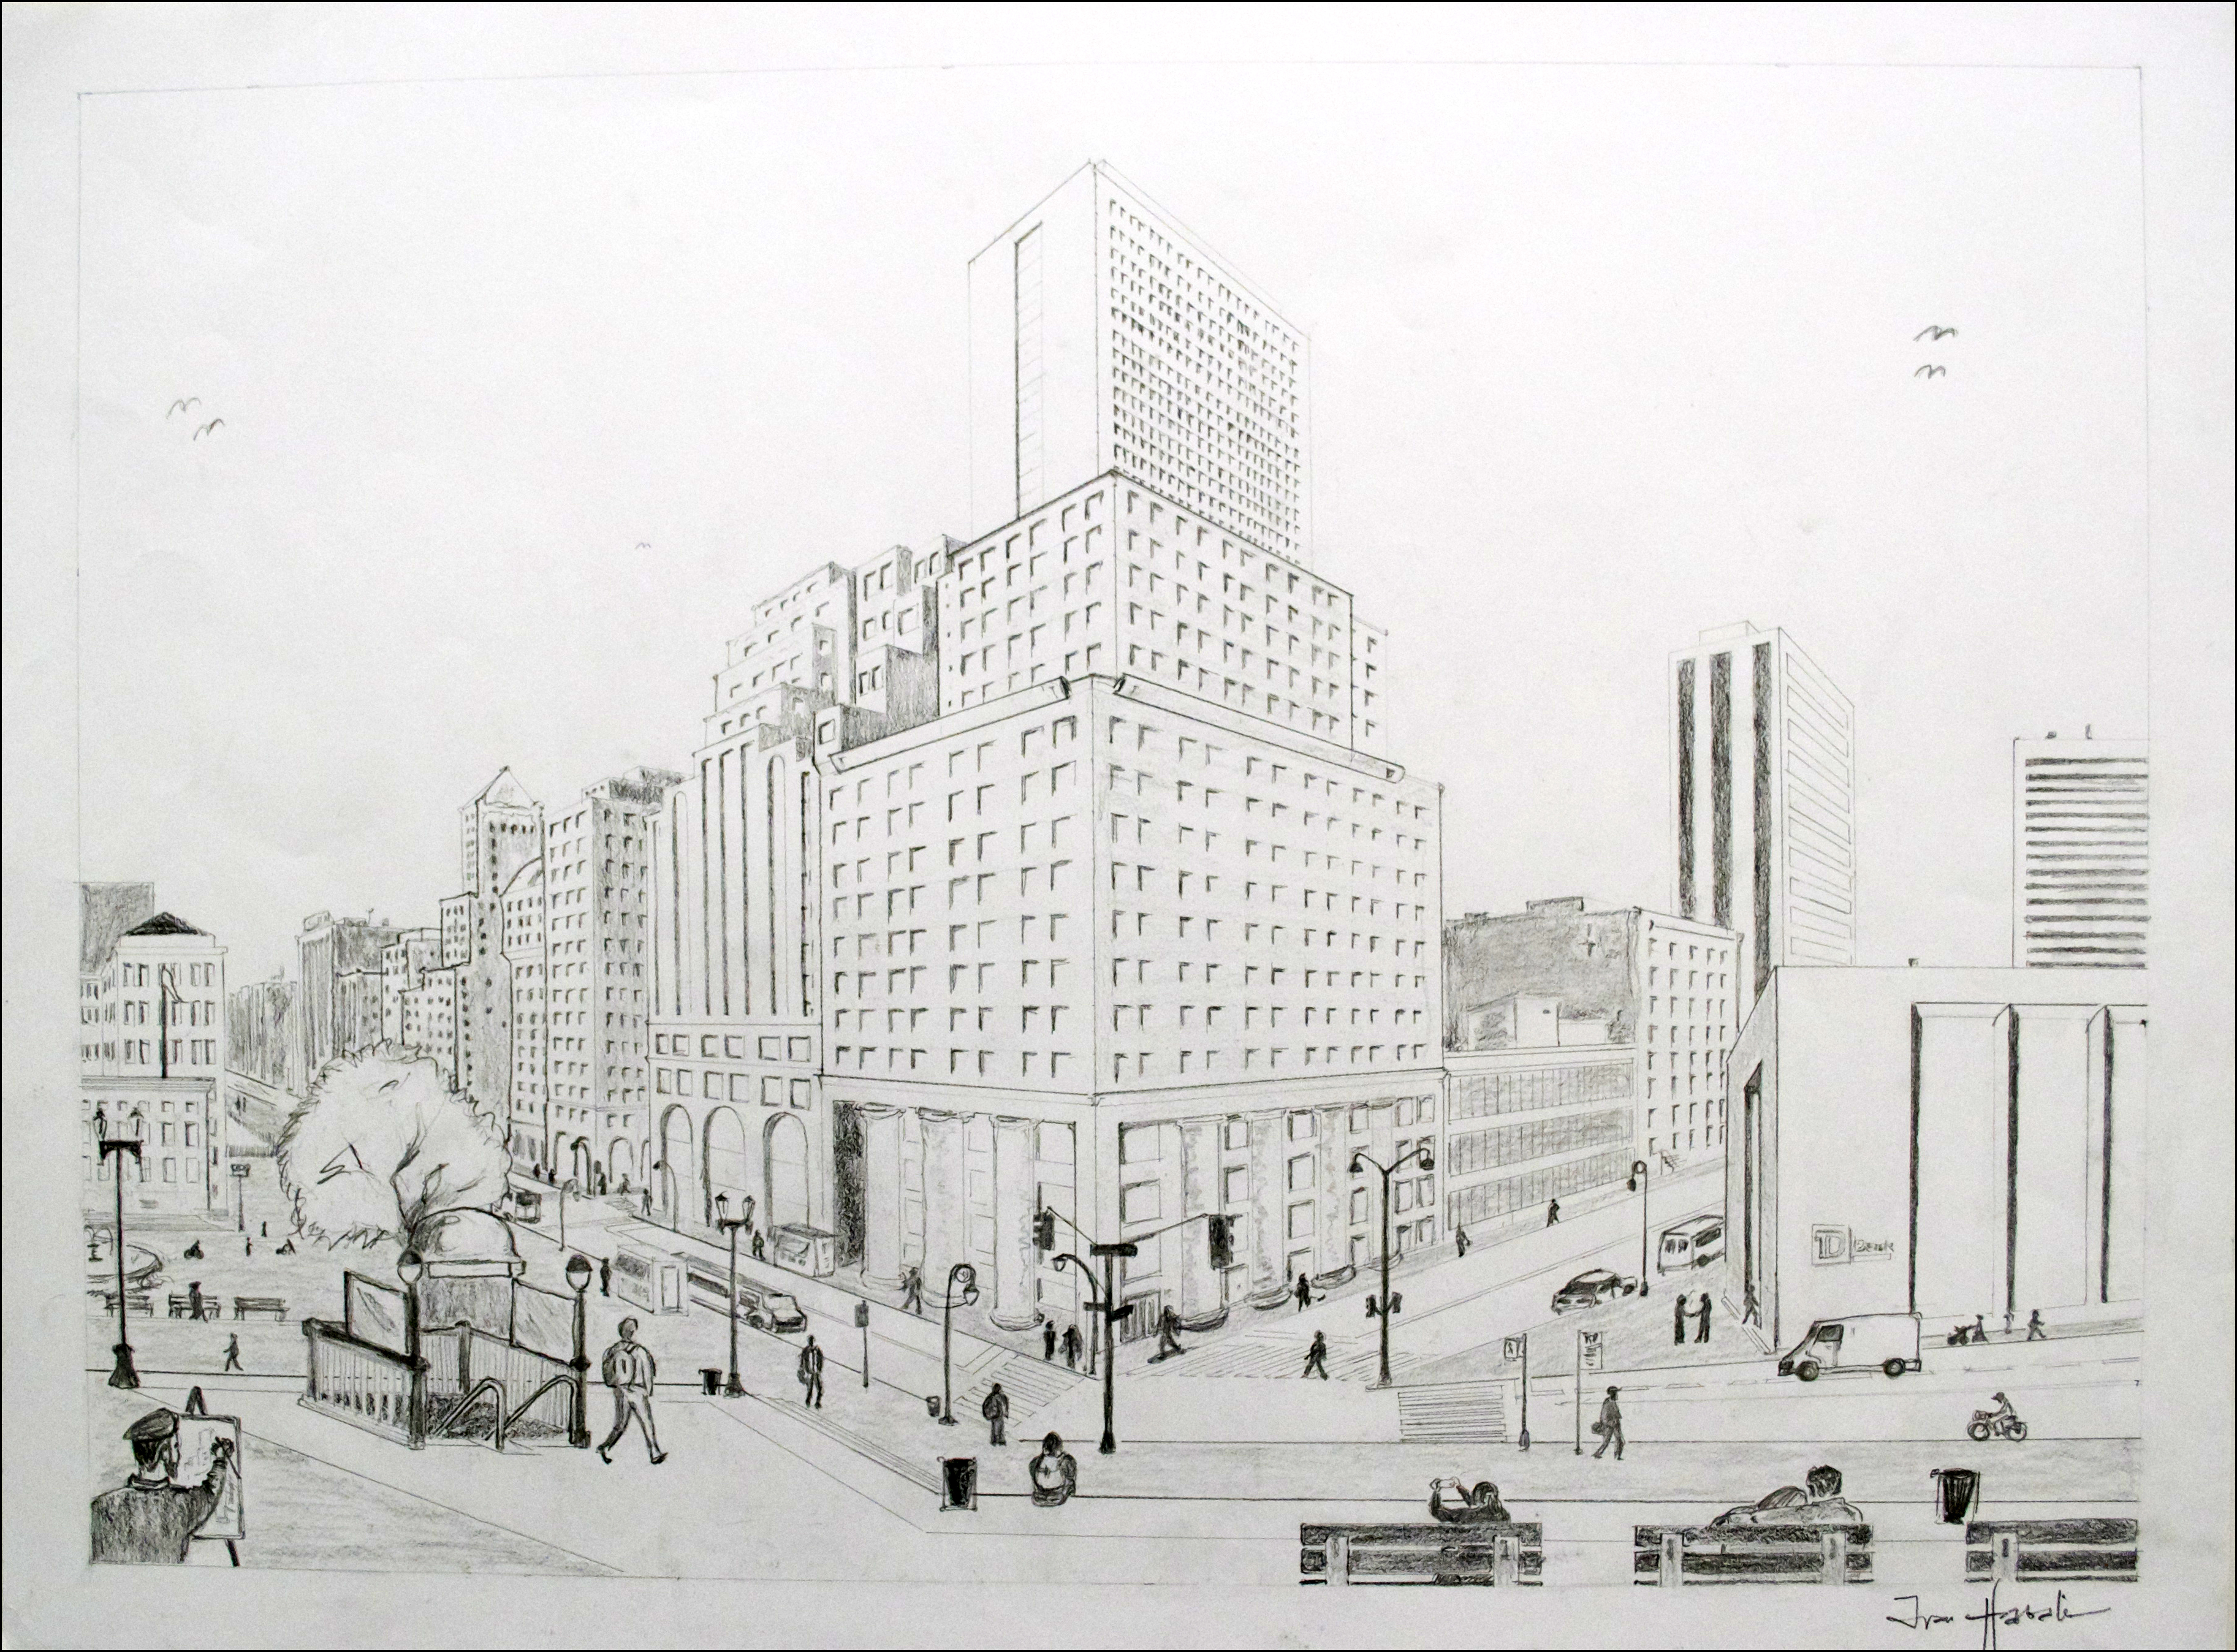 Drawn scenery busy city Perspective Perspective Perspective Point 2